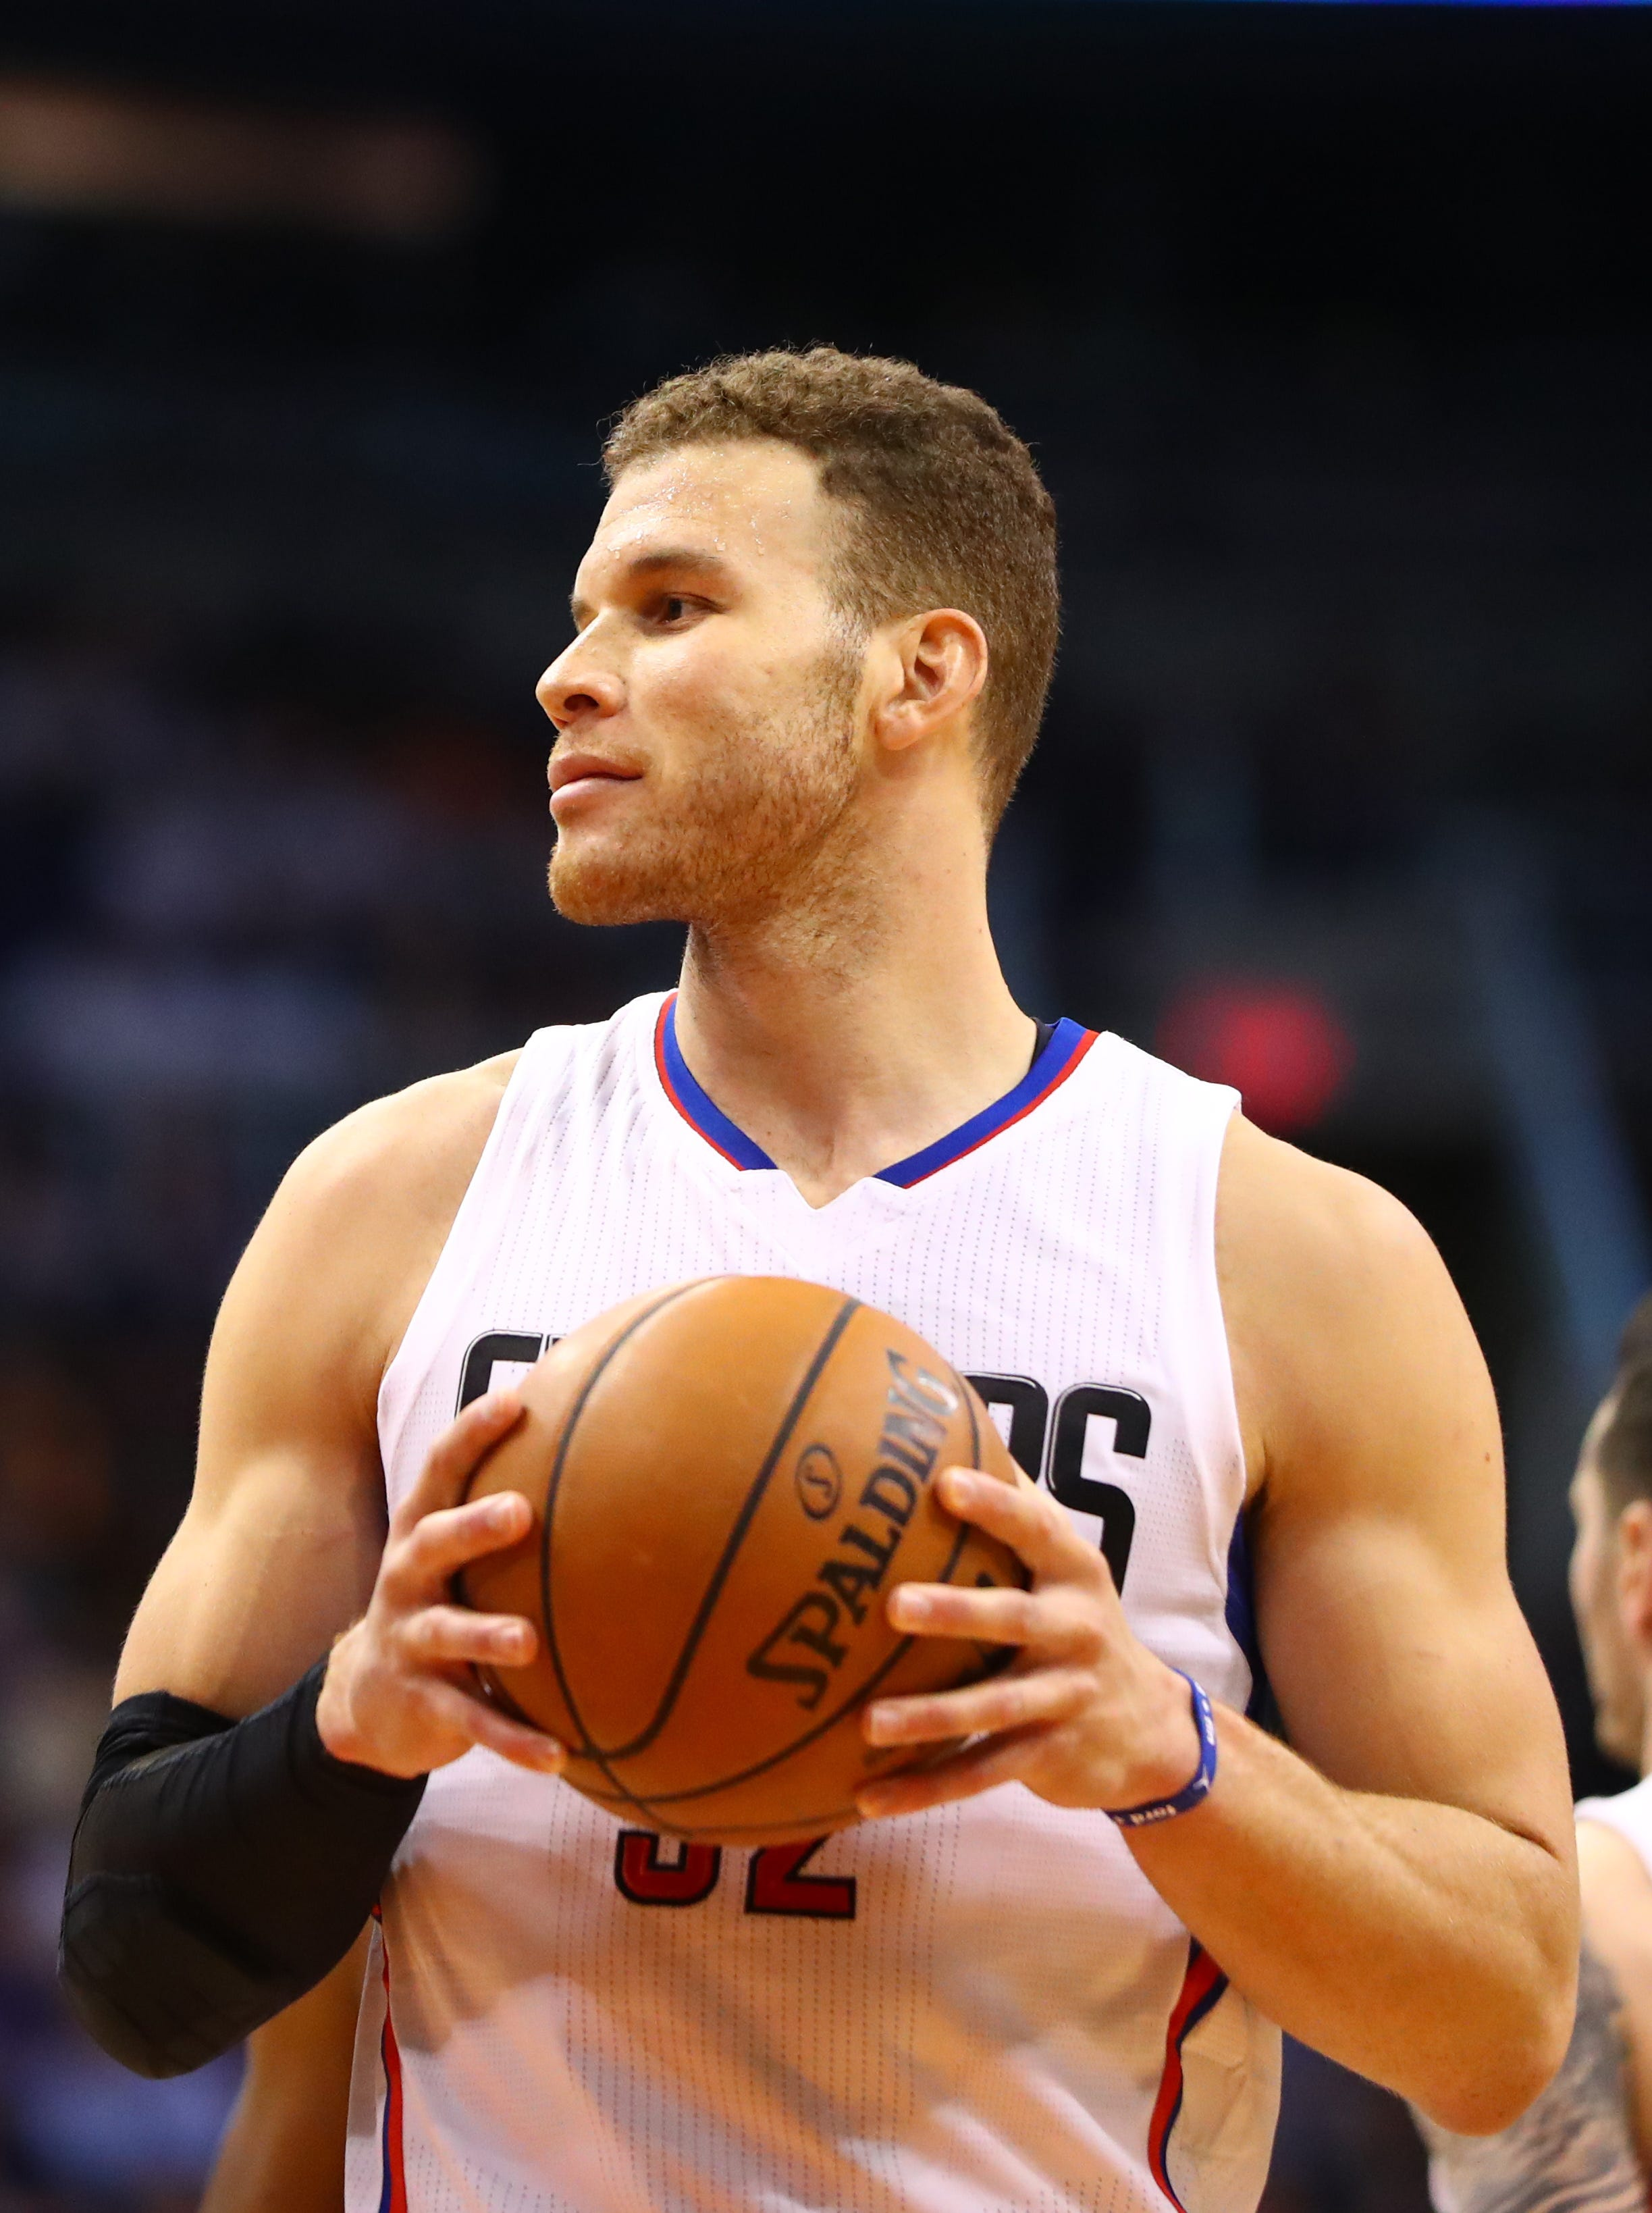 636344612626137605-USP-NBA-LOS-ANGELES-CLIPPERS-AT-PHOENIX-SUNS-90407860 NBA free agency tracker: Which stars are on the move?